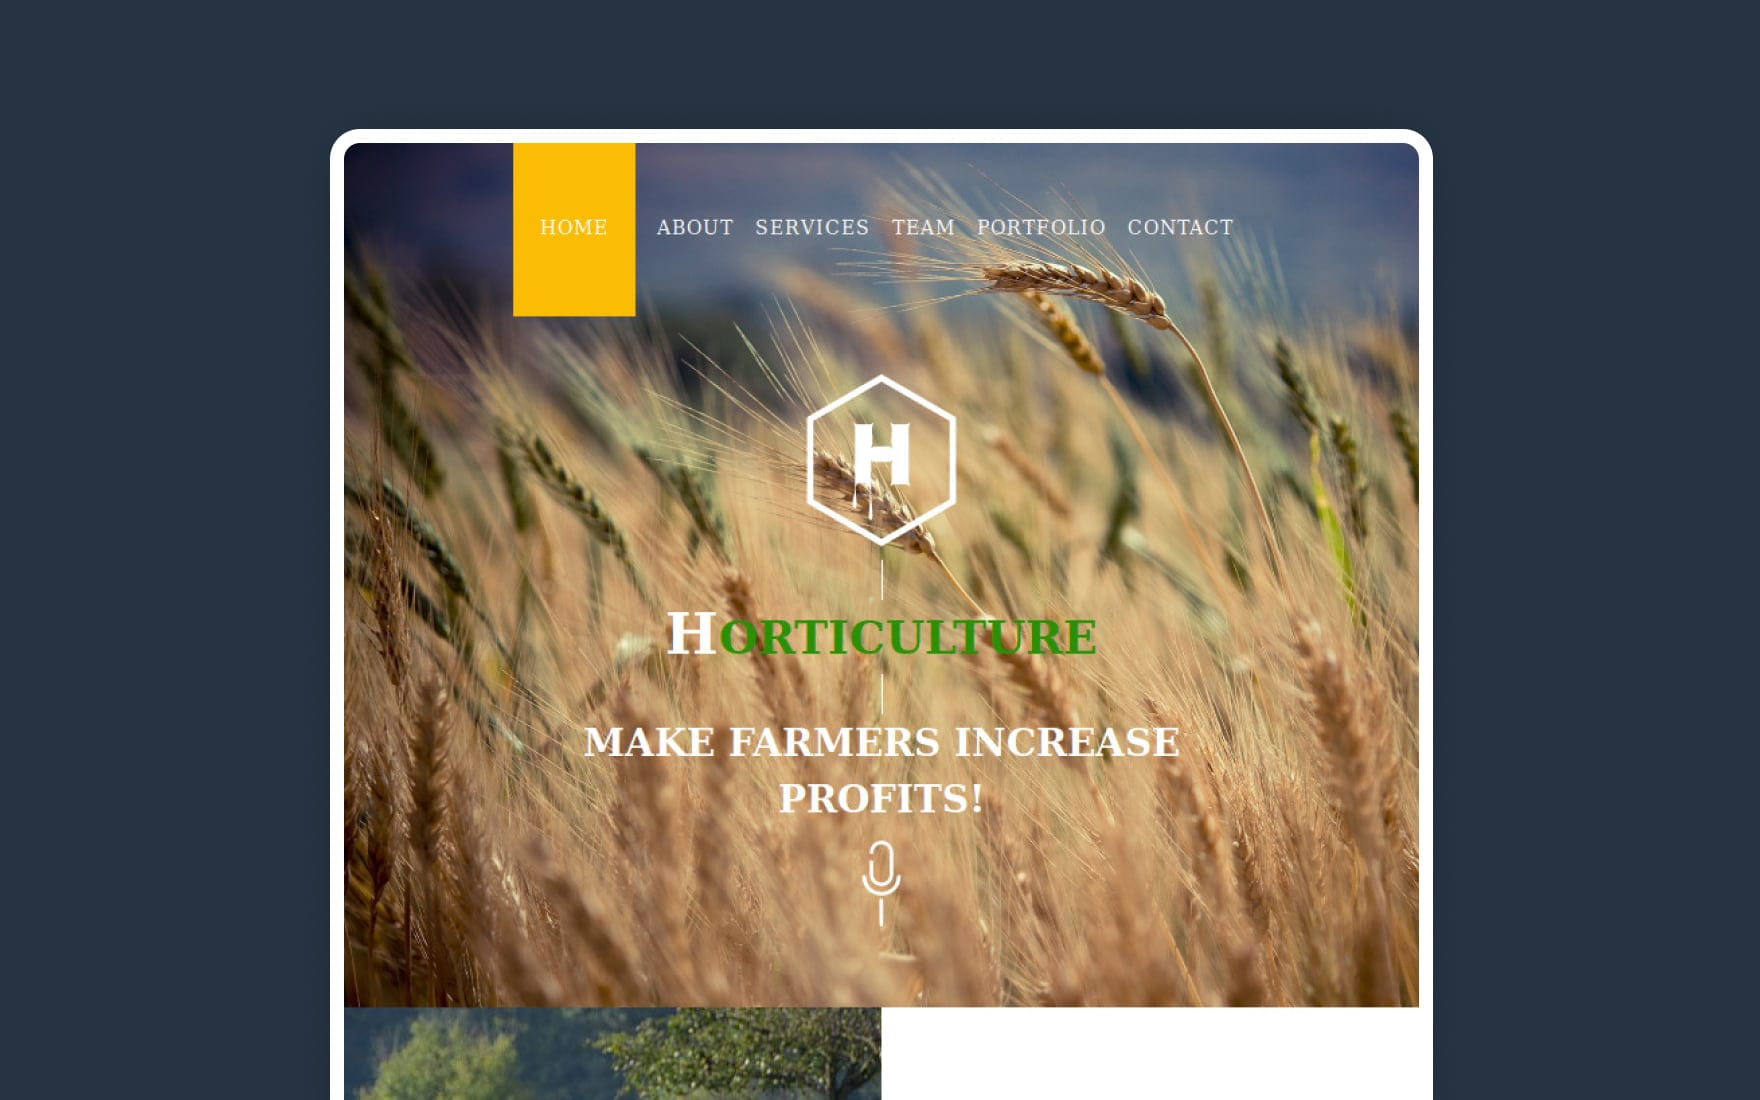 Horticulture a Newsletter Template